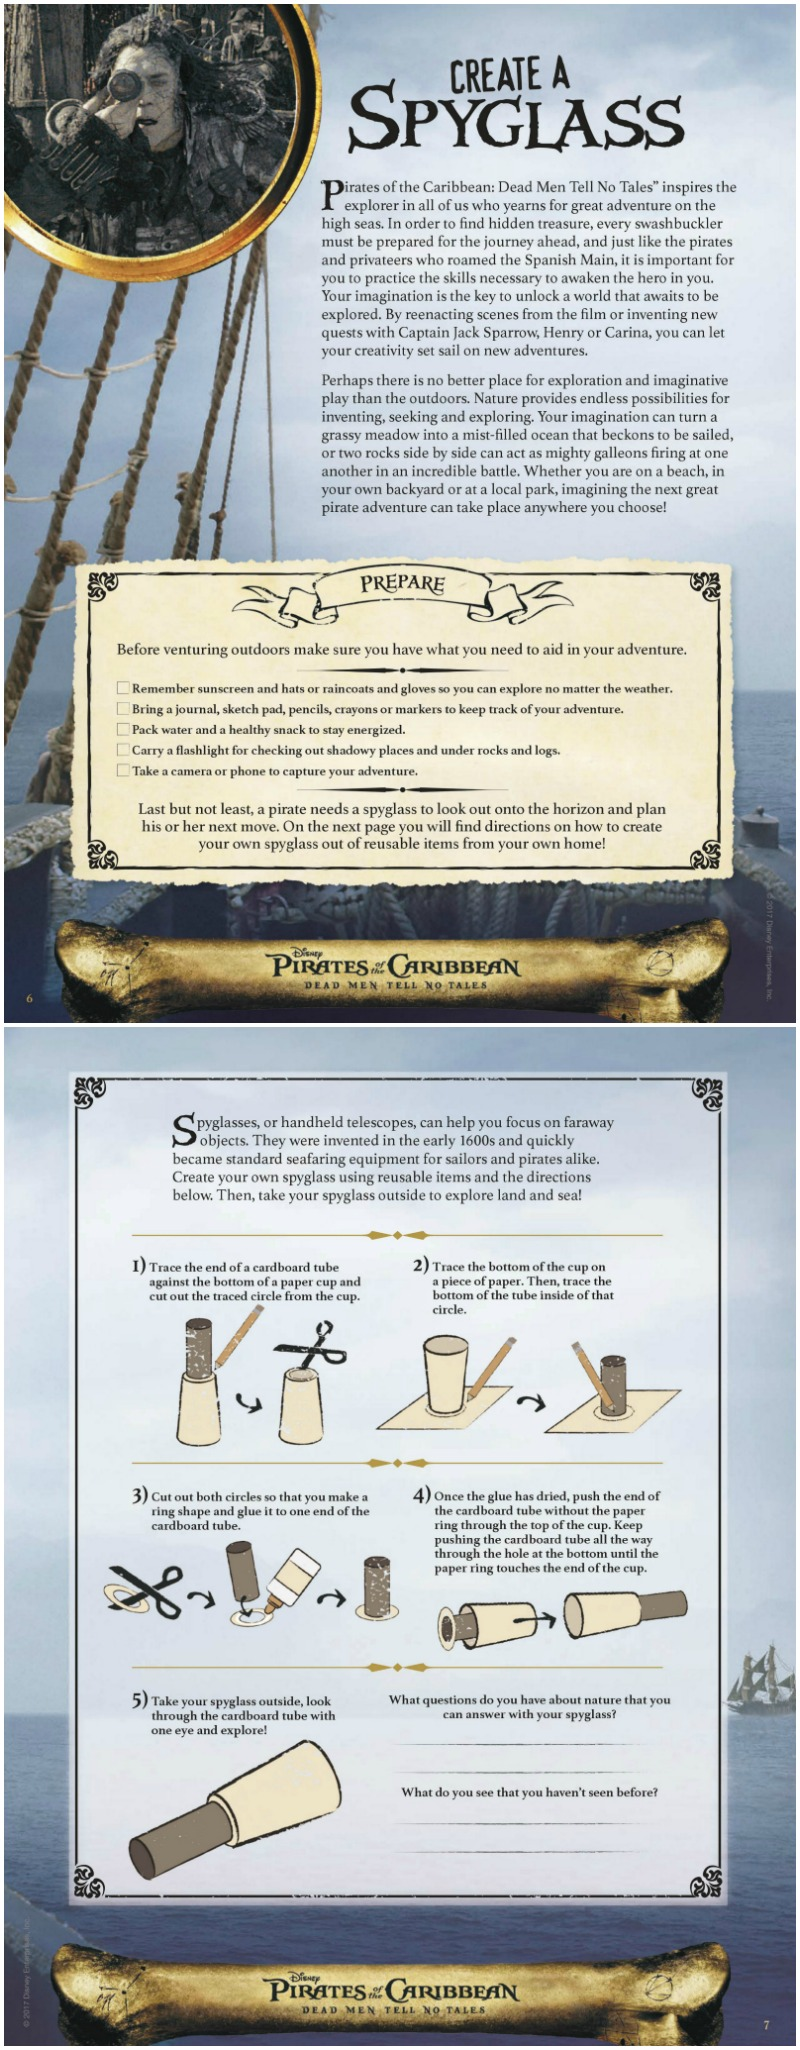 Disney Pirate Spyglass Craft - Perfect for a Pirate Party - Disney Pirates of The Caribbean Dead Men Tell No Tales